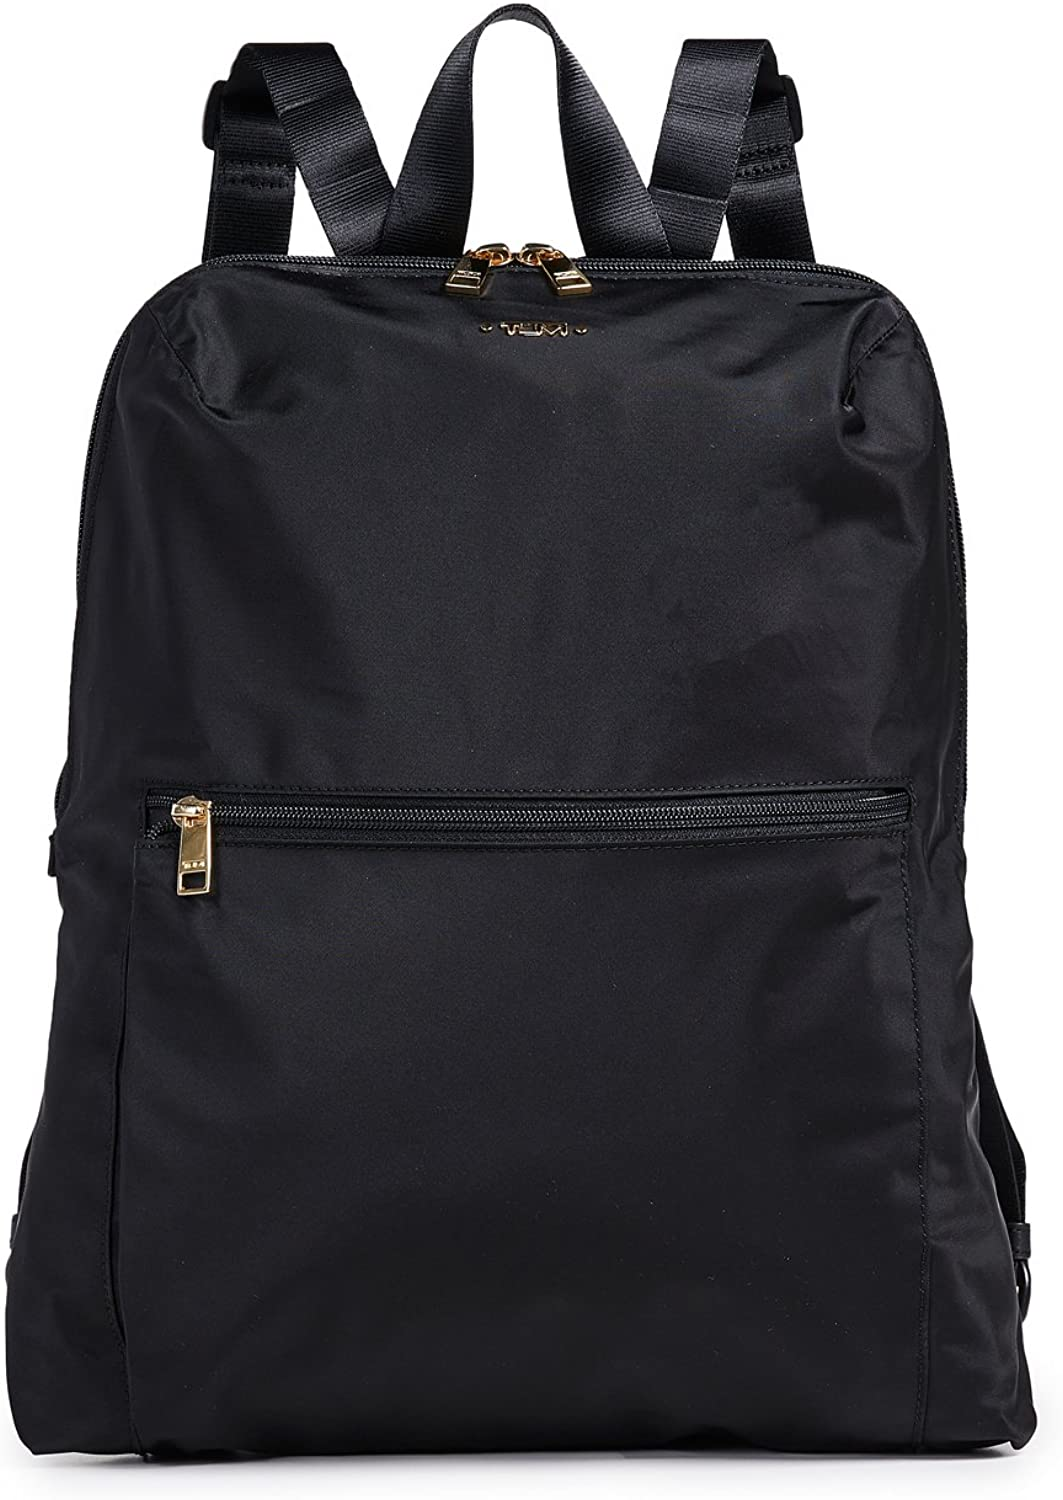 TUMI Hiking Backpack